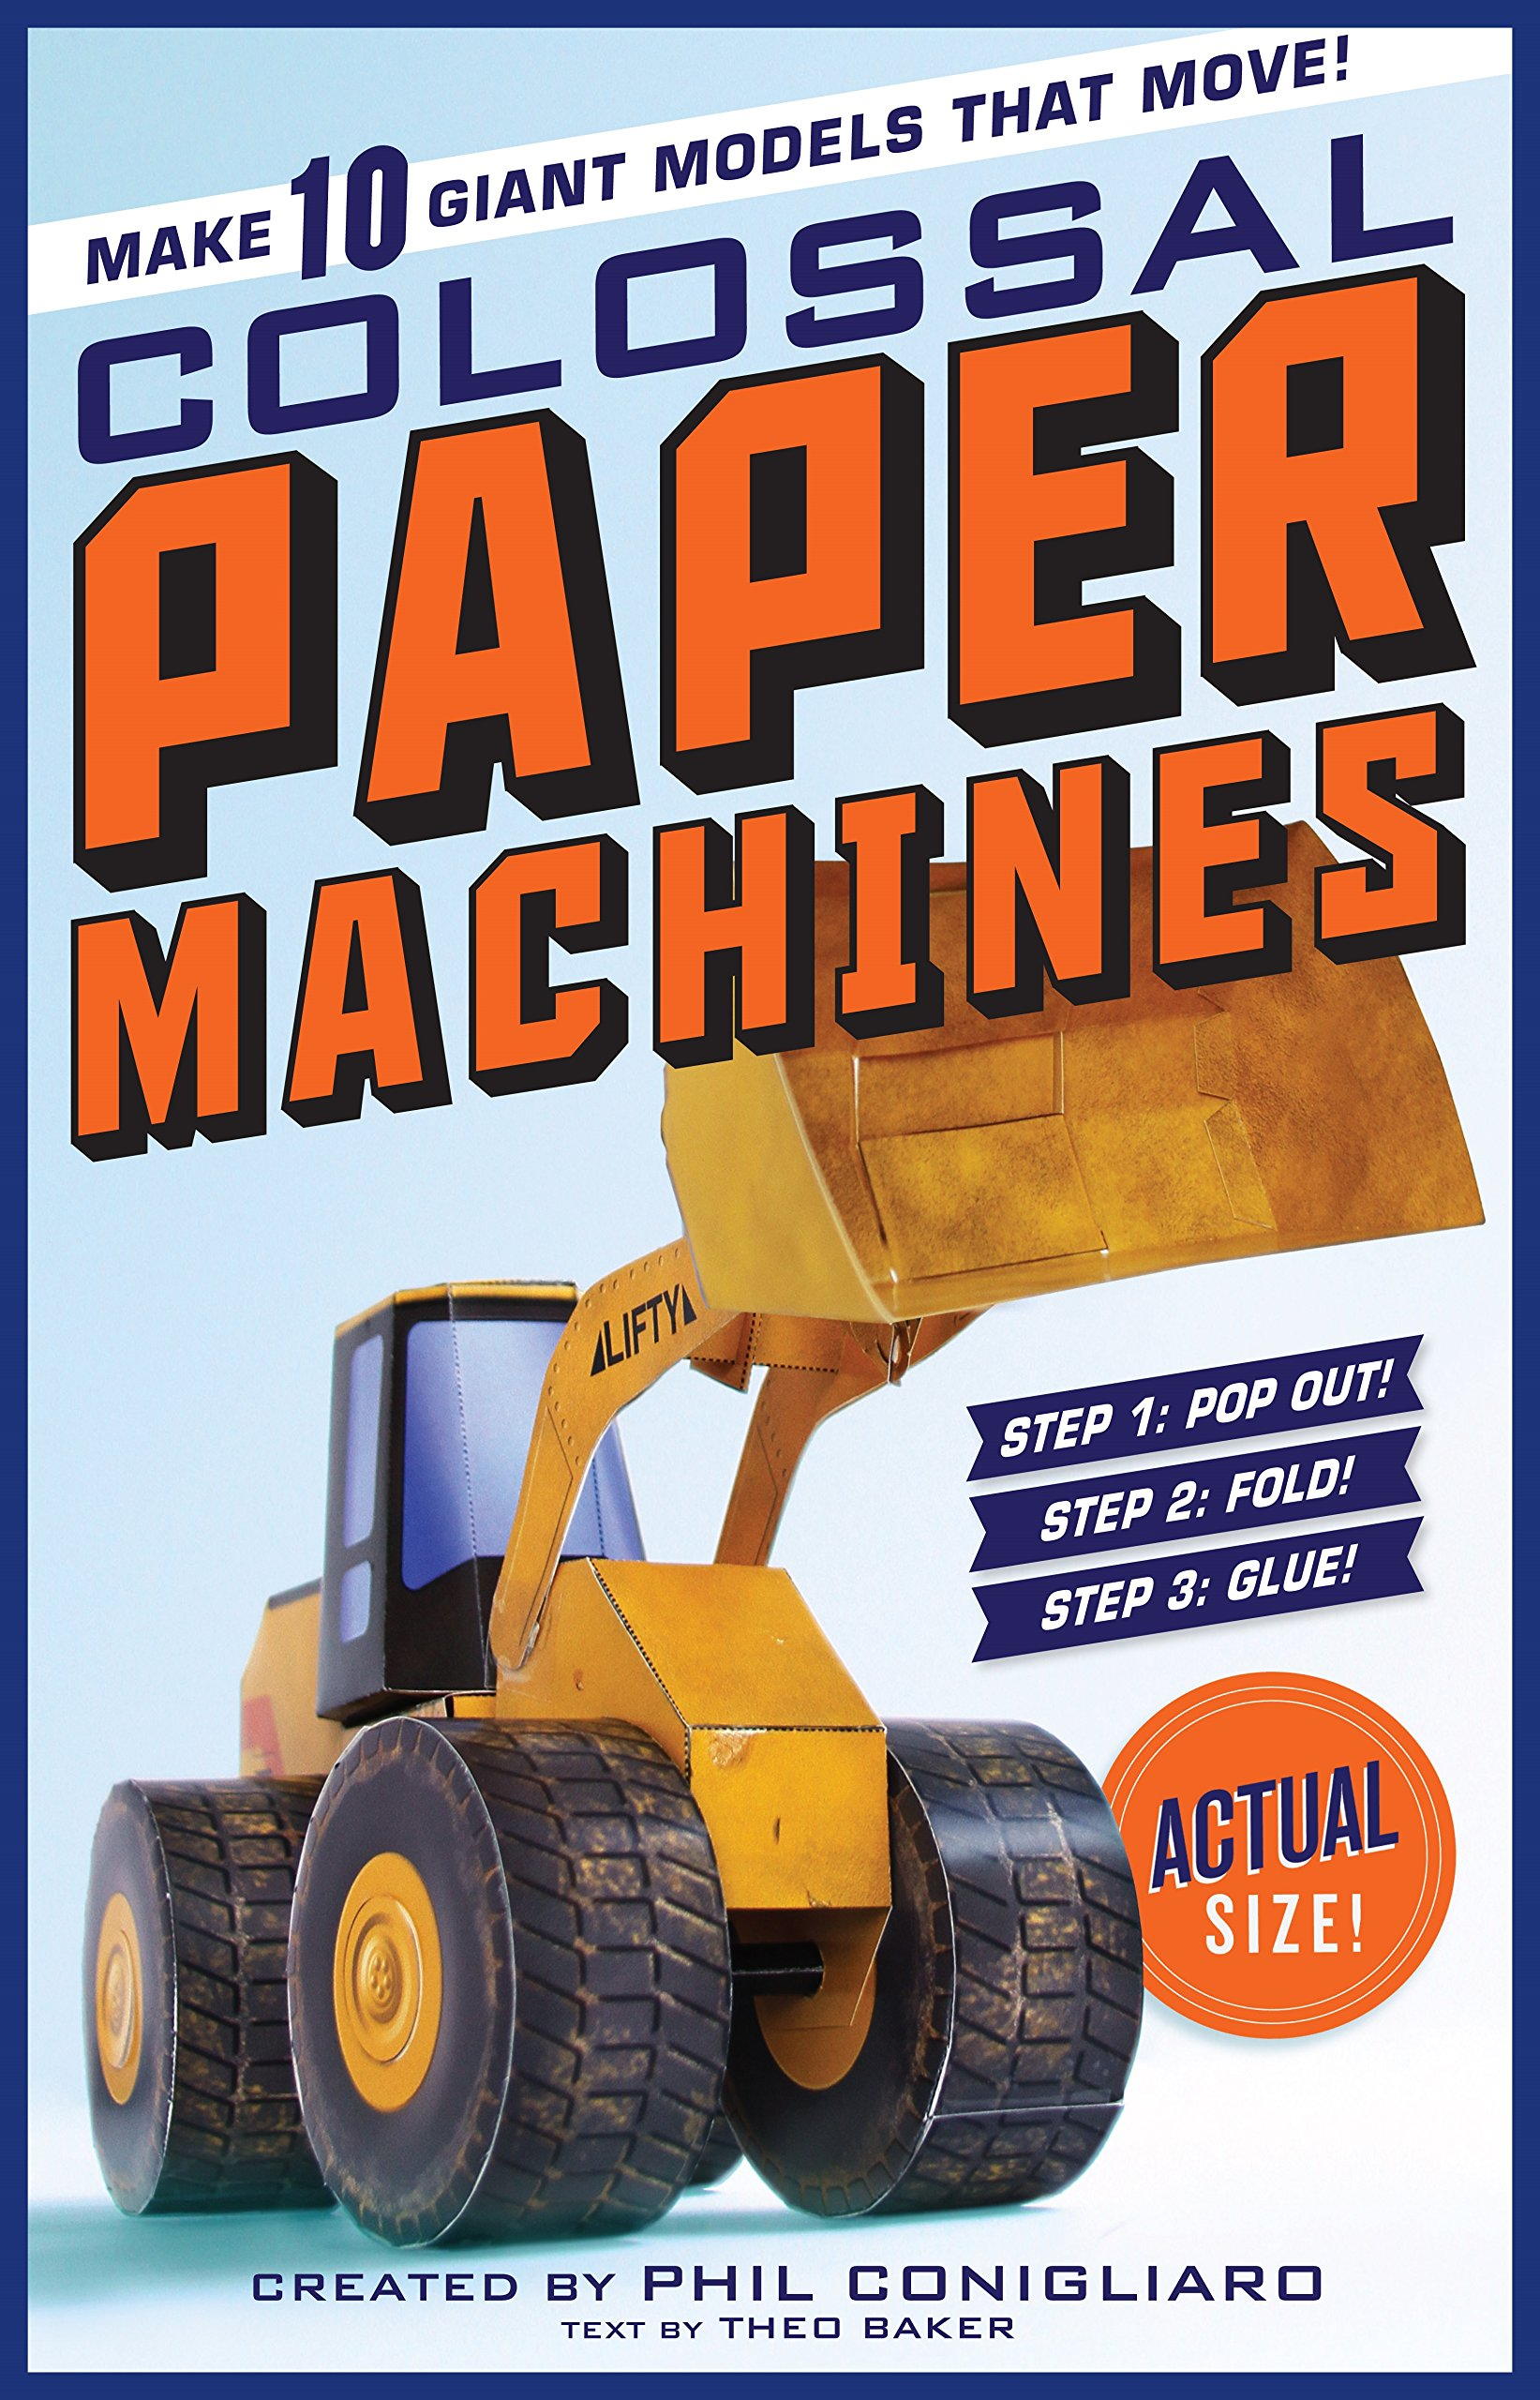 Colossal Paper Machines: Make 10 Giant Models That Move! by Workman Publishing (Image #5)